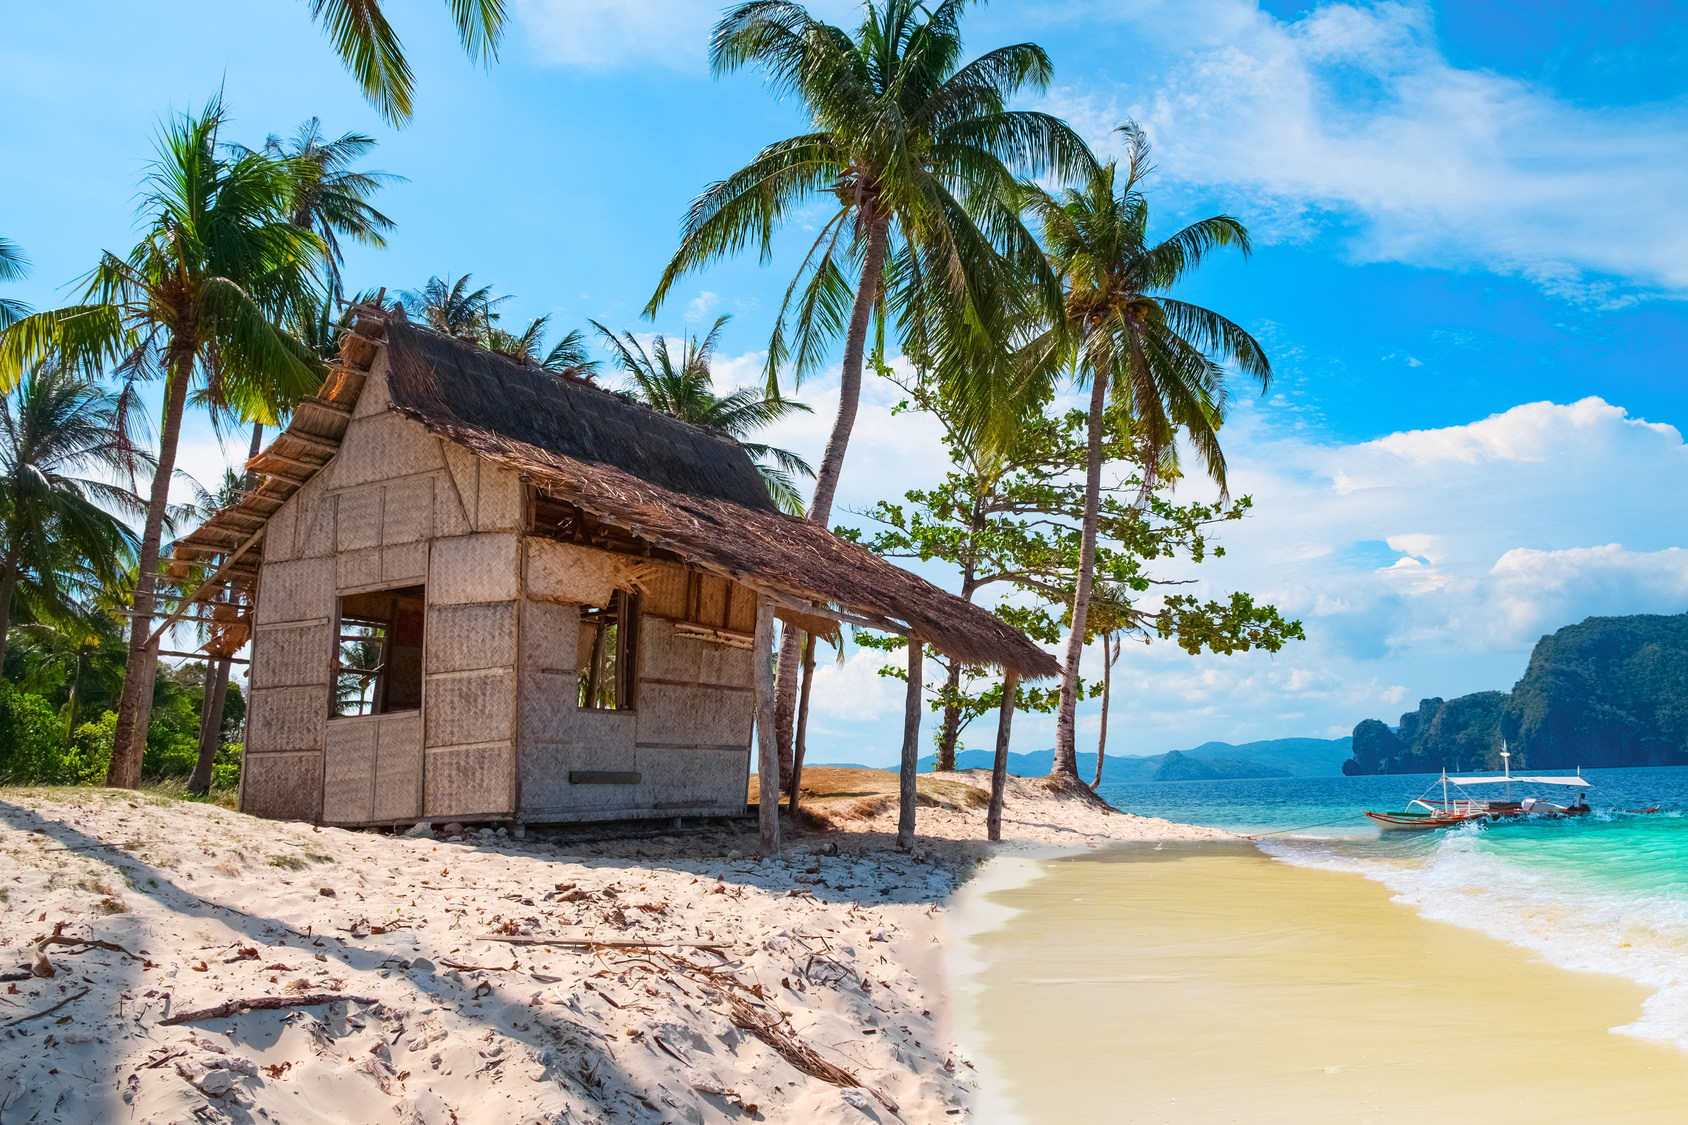 Scenic tropical landscape, Palawan, Philippines, Southeast Asia. Beautiful tropical island with hut, sandy beach, palms. Sea bay scenery. Popular landmark, tourist destination of Philippines